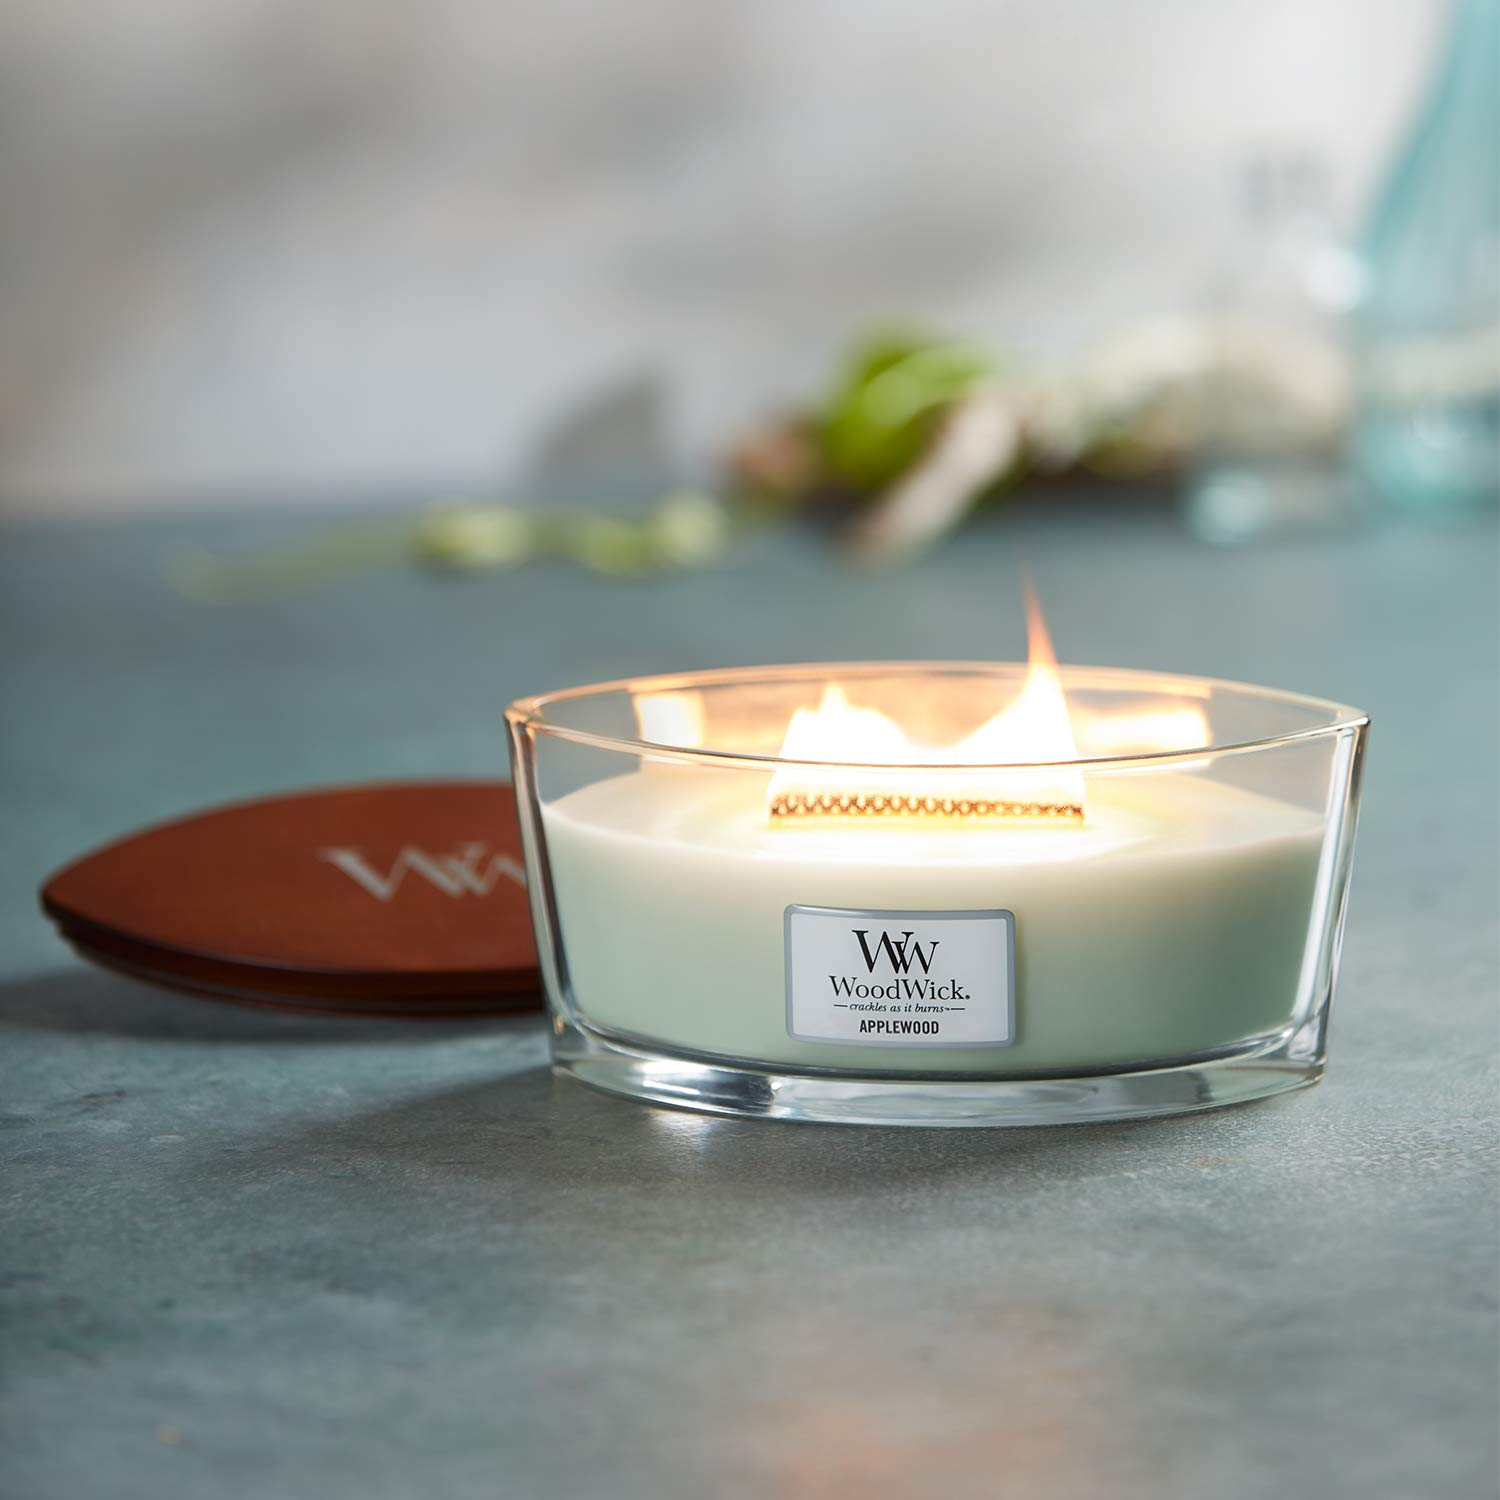 Woodwick Eclipse Island Coconut Crackle Candle